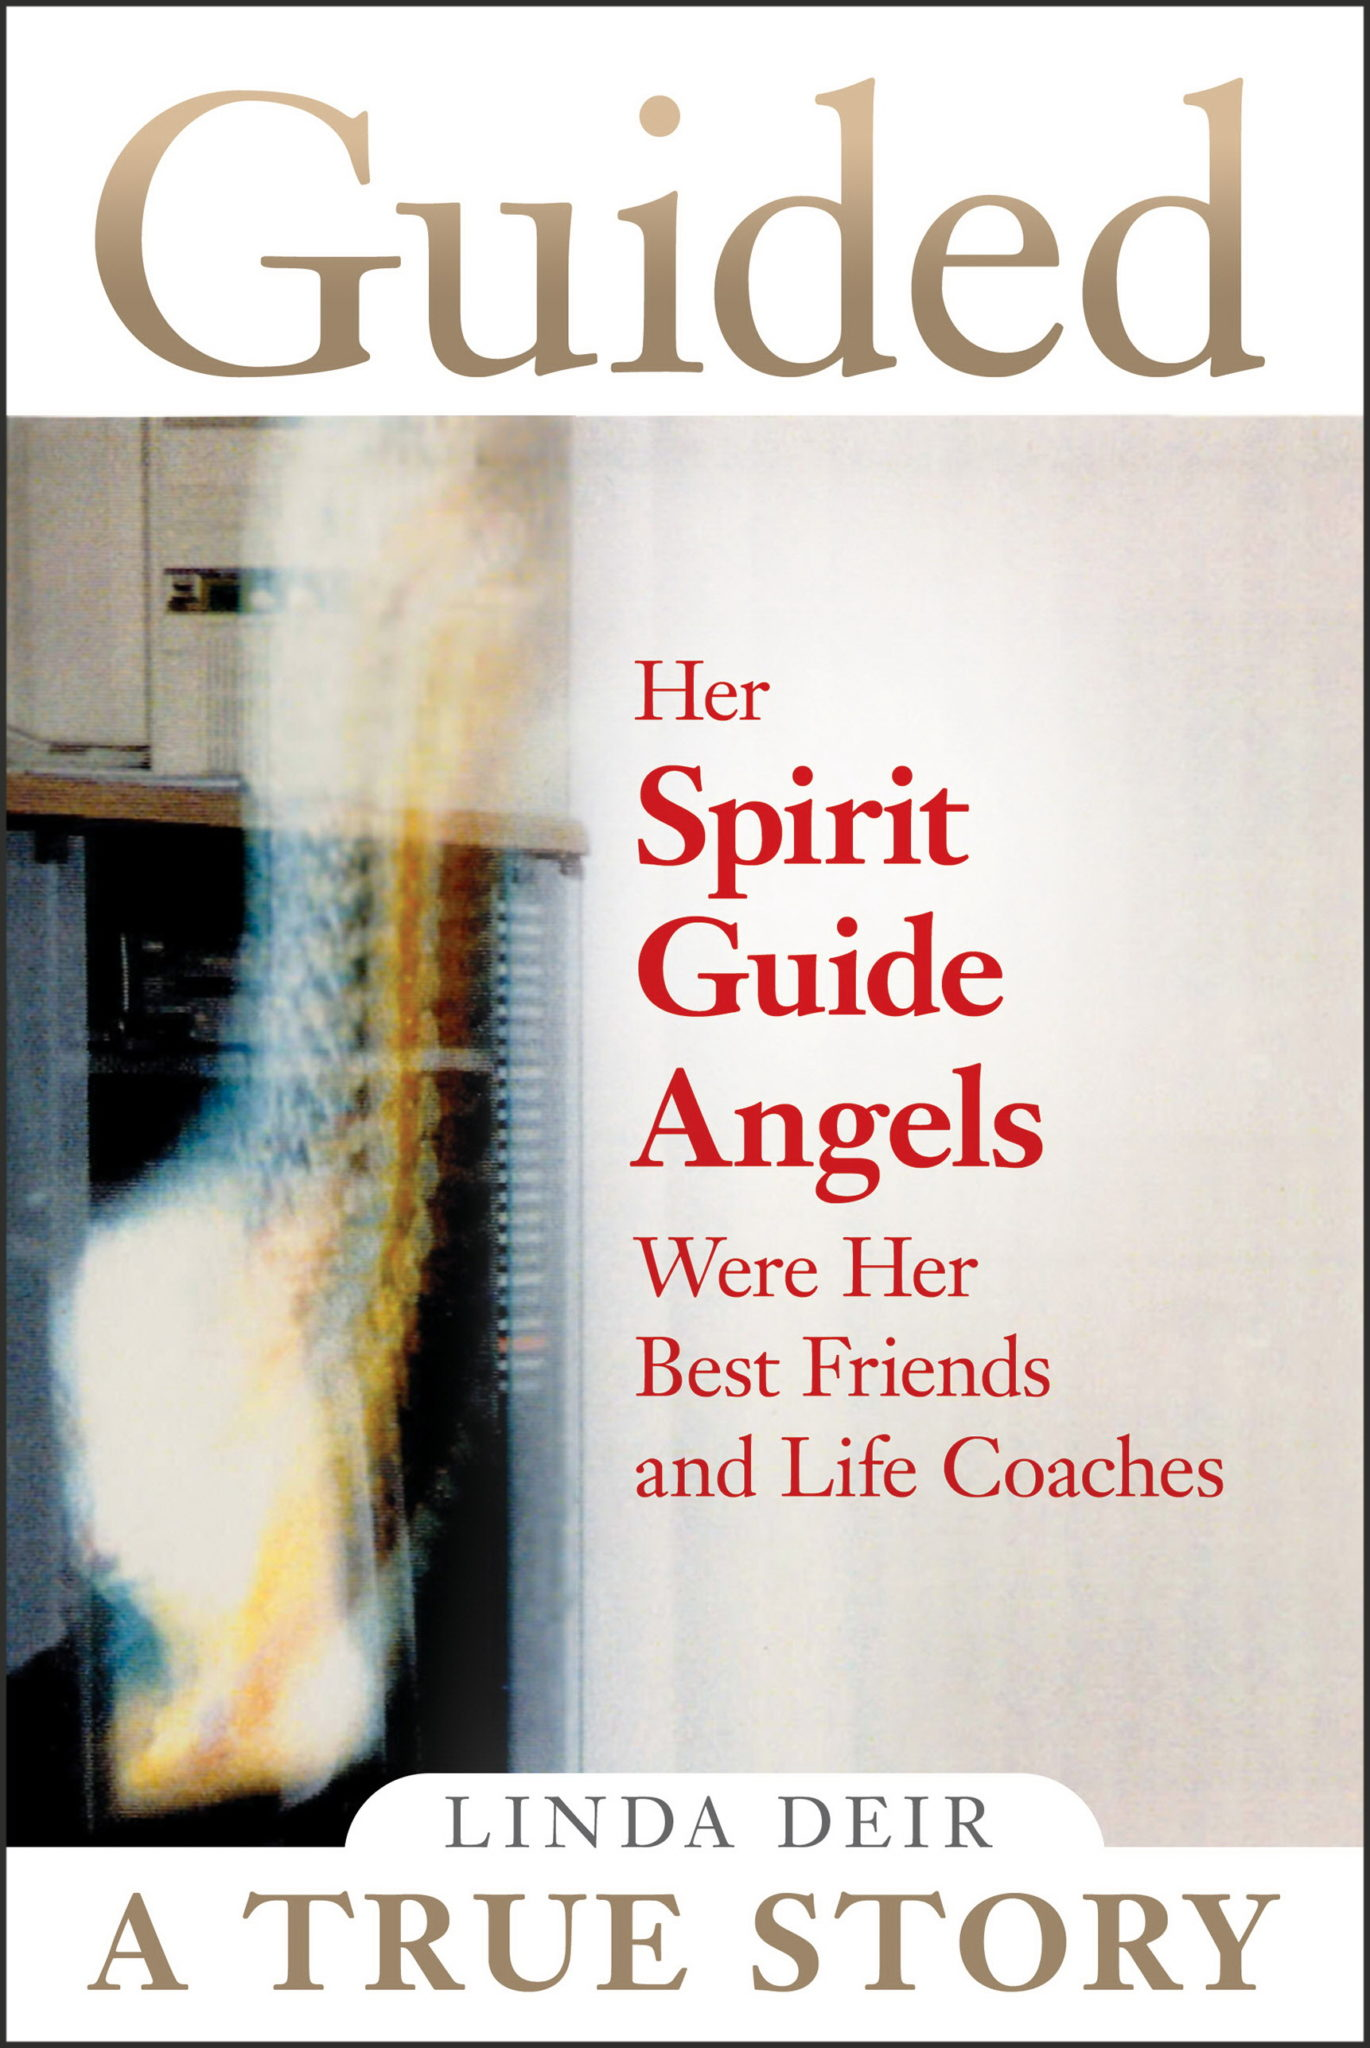 Guided: Her Spirit Guide Angels Were Her Best Friends and Life Coaches, by Linda Deir